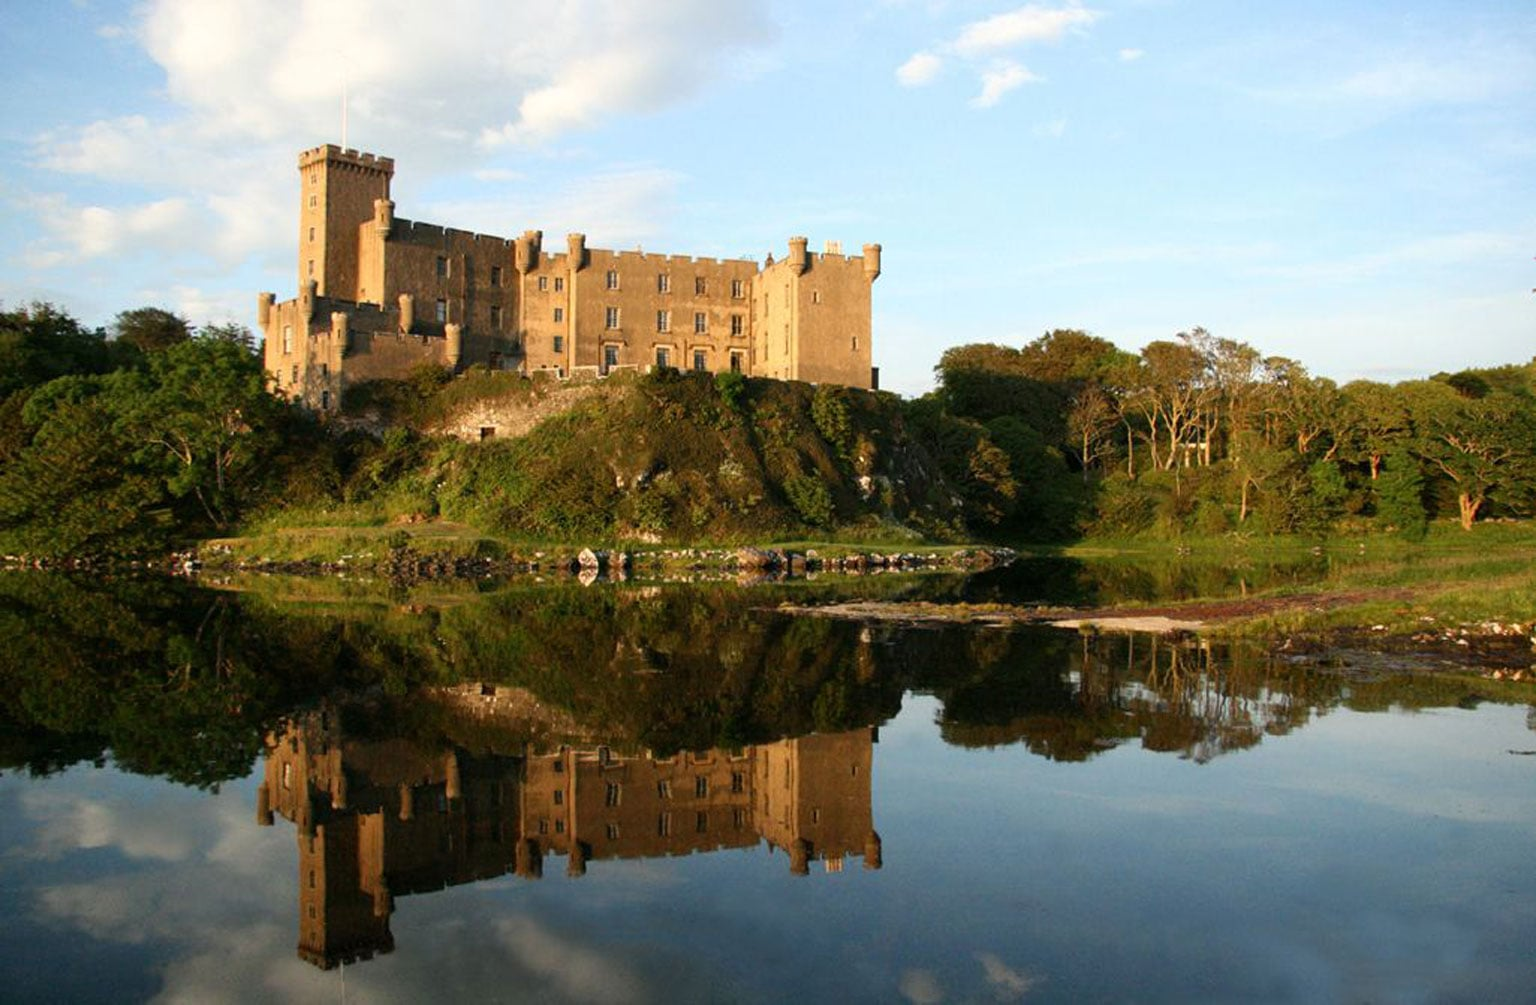 2. Dunvegan Castle, Isle of Skye - Reduced price entry with National Art Pass